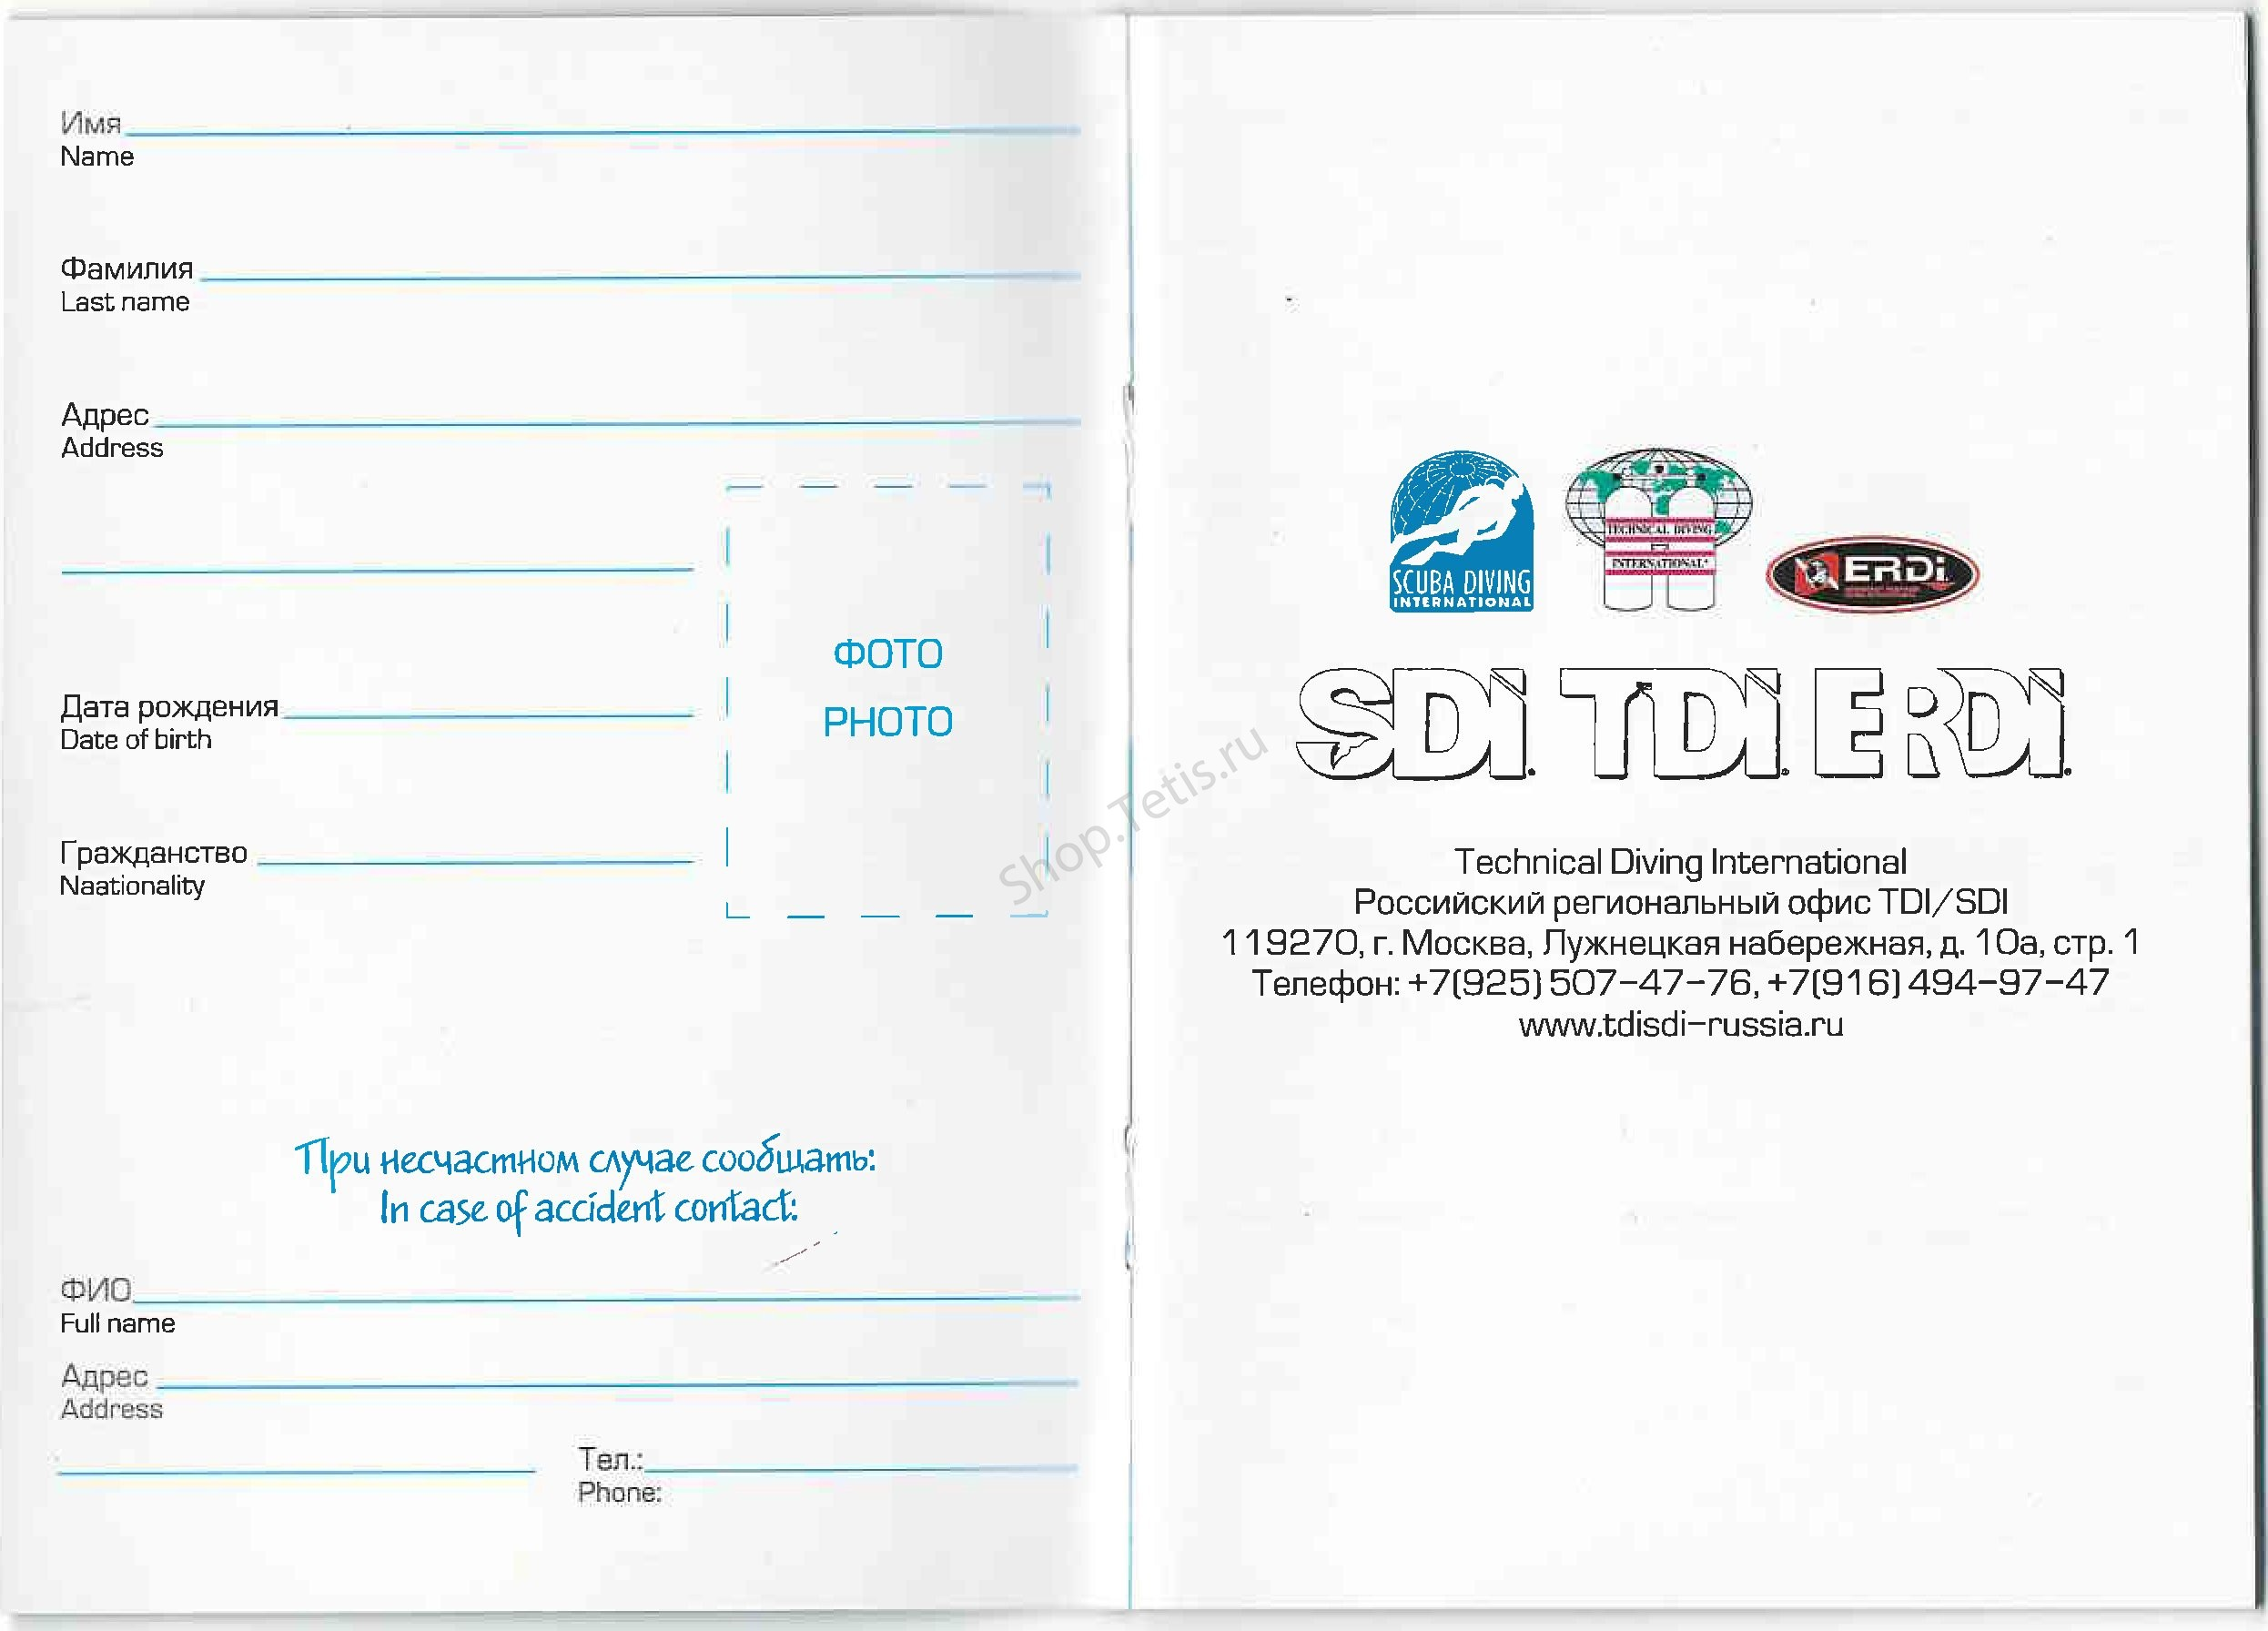 Log Book SDI/TDI